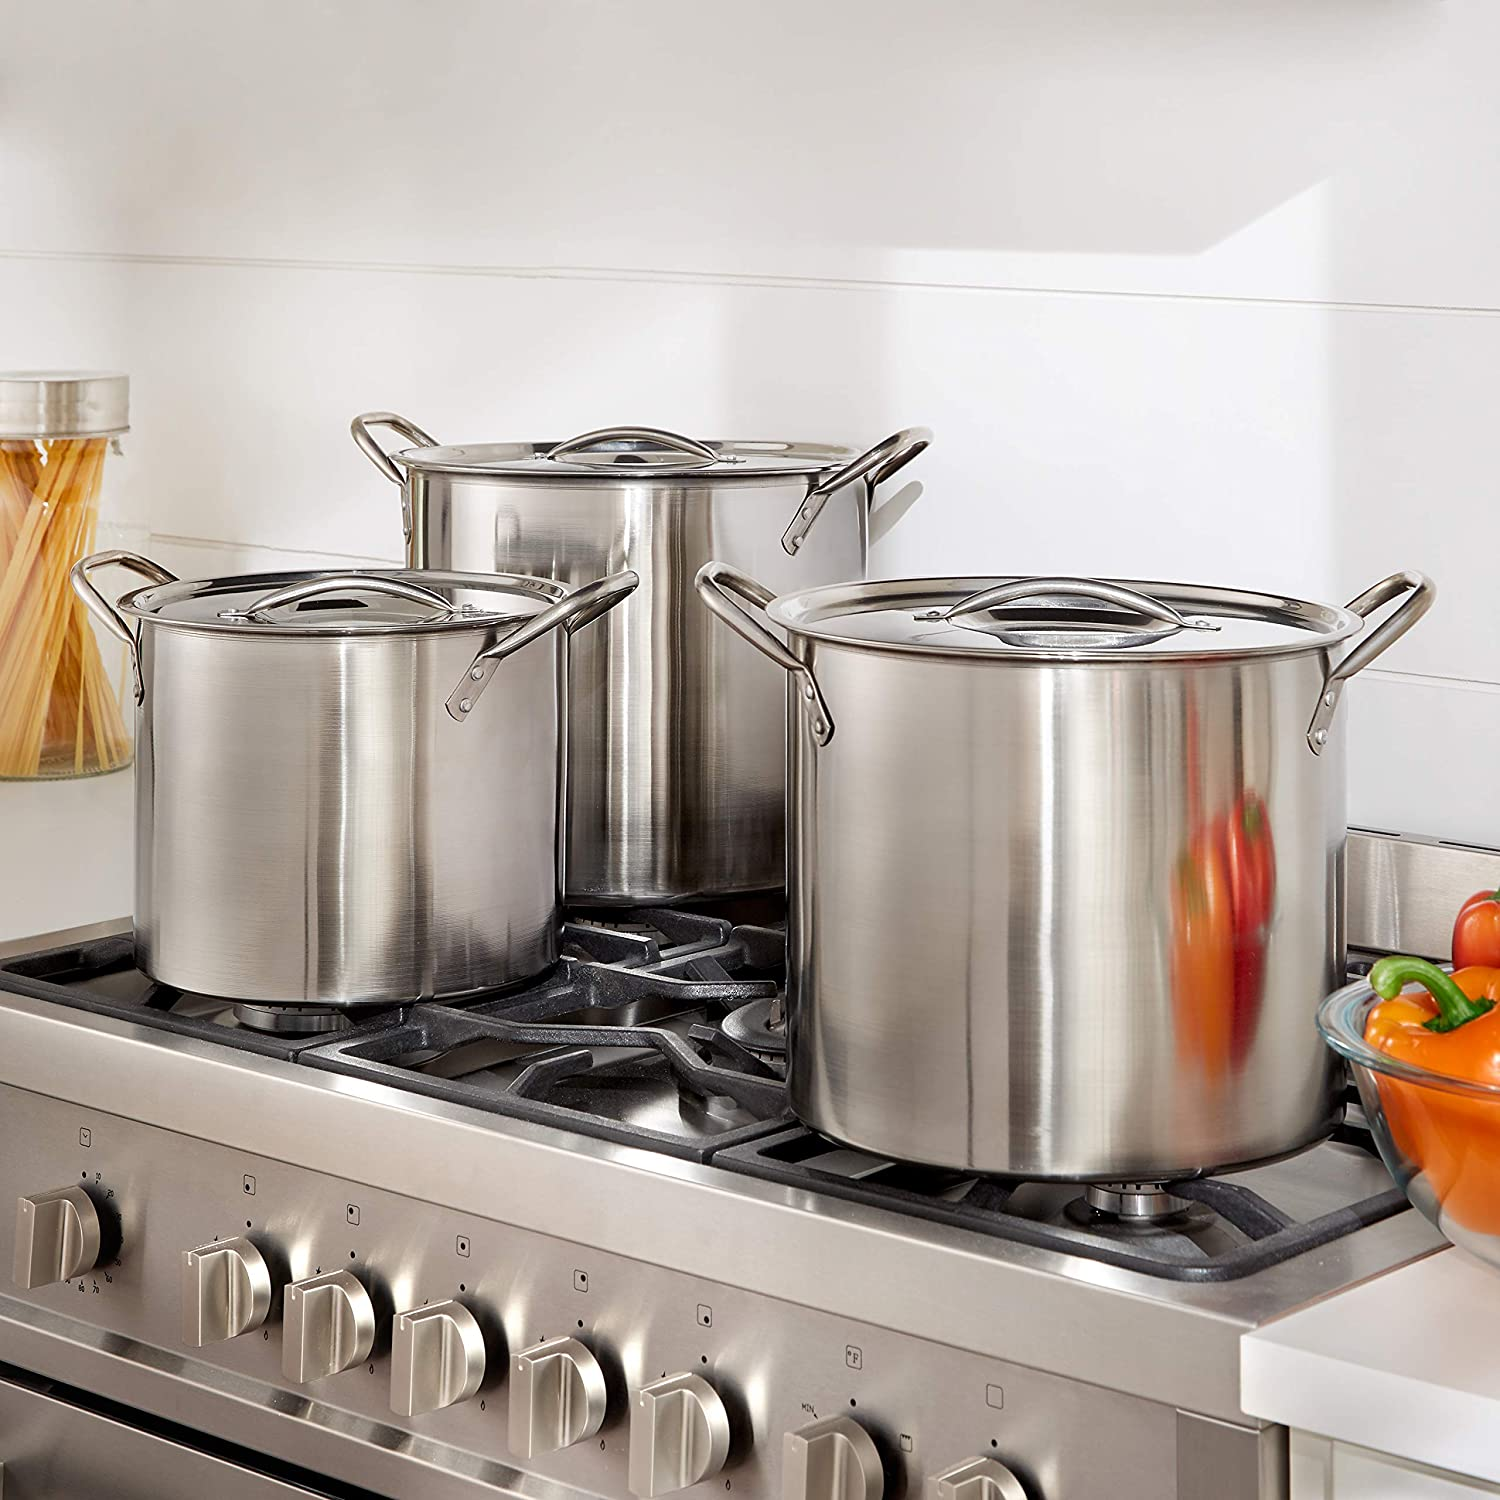 Stainless Steel Stockpot Set Stainless BrylaneHome 6-Pc